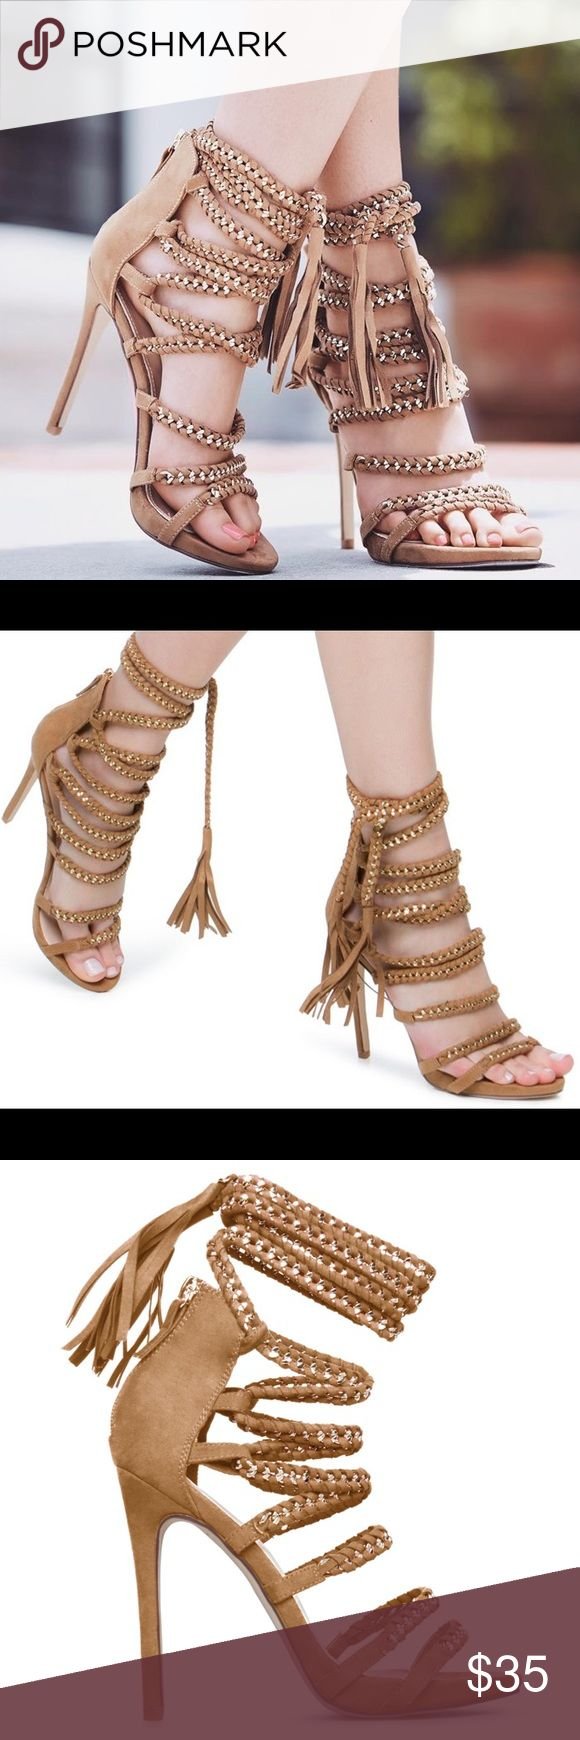 Shoedazzle Lace Up Tassel Heels Super cute and perfectly on trend! Excellent pre worn condition, worn once! No trades!! 0251740gwpg Shoe Dazzle Shoes Heels